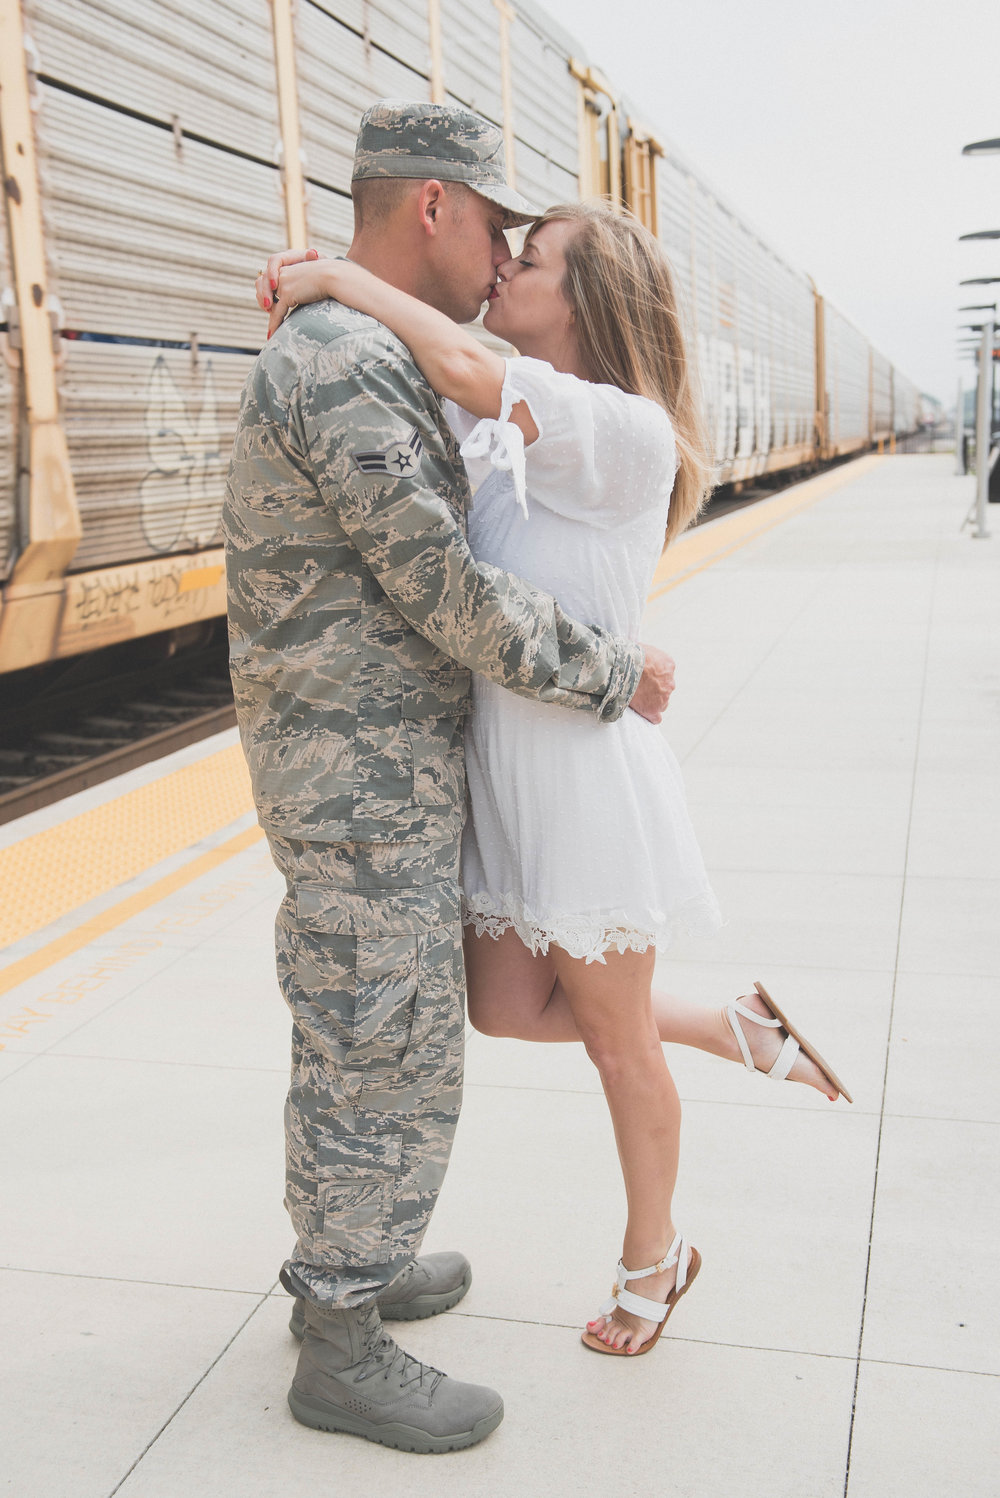 military kiss in front of train